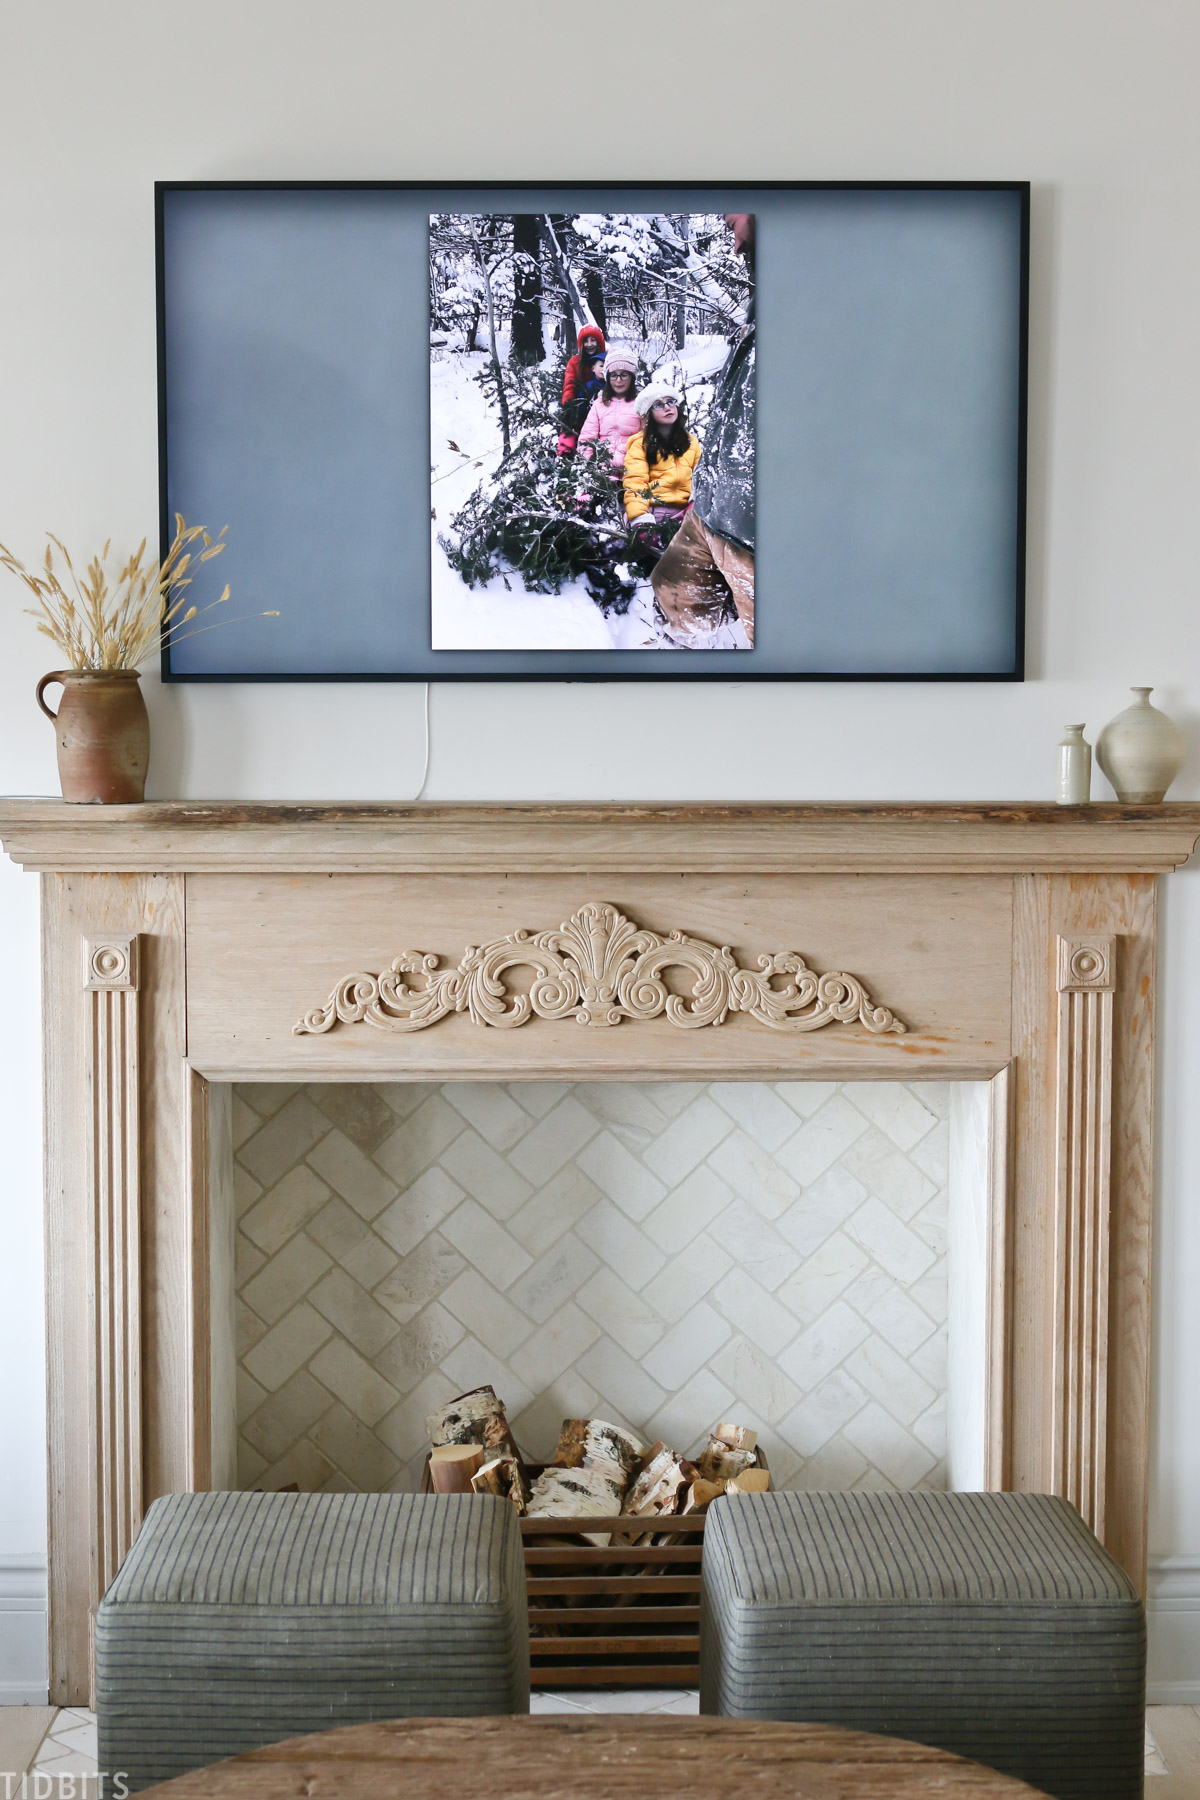 faux fireplace mantel with wood placed inside fireplace and Samsung Frame TV above mantel